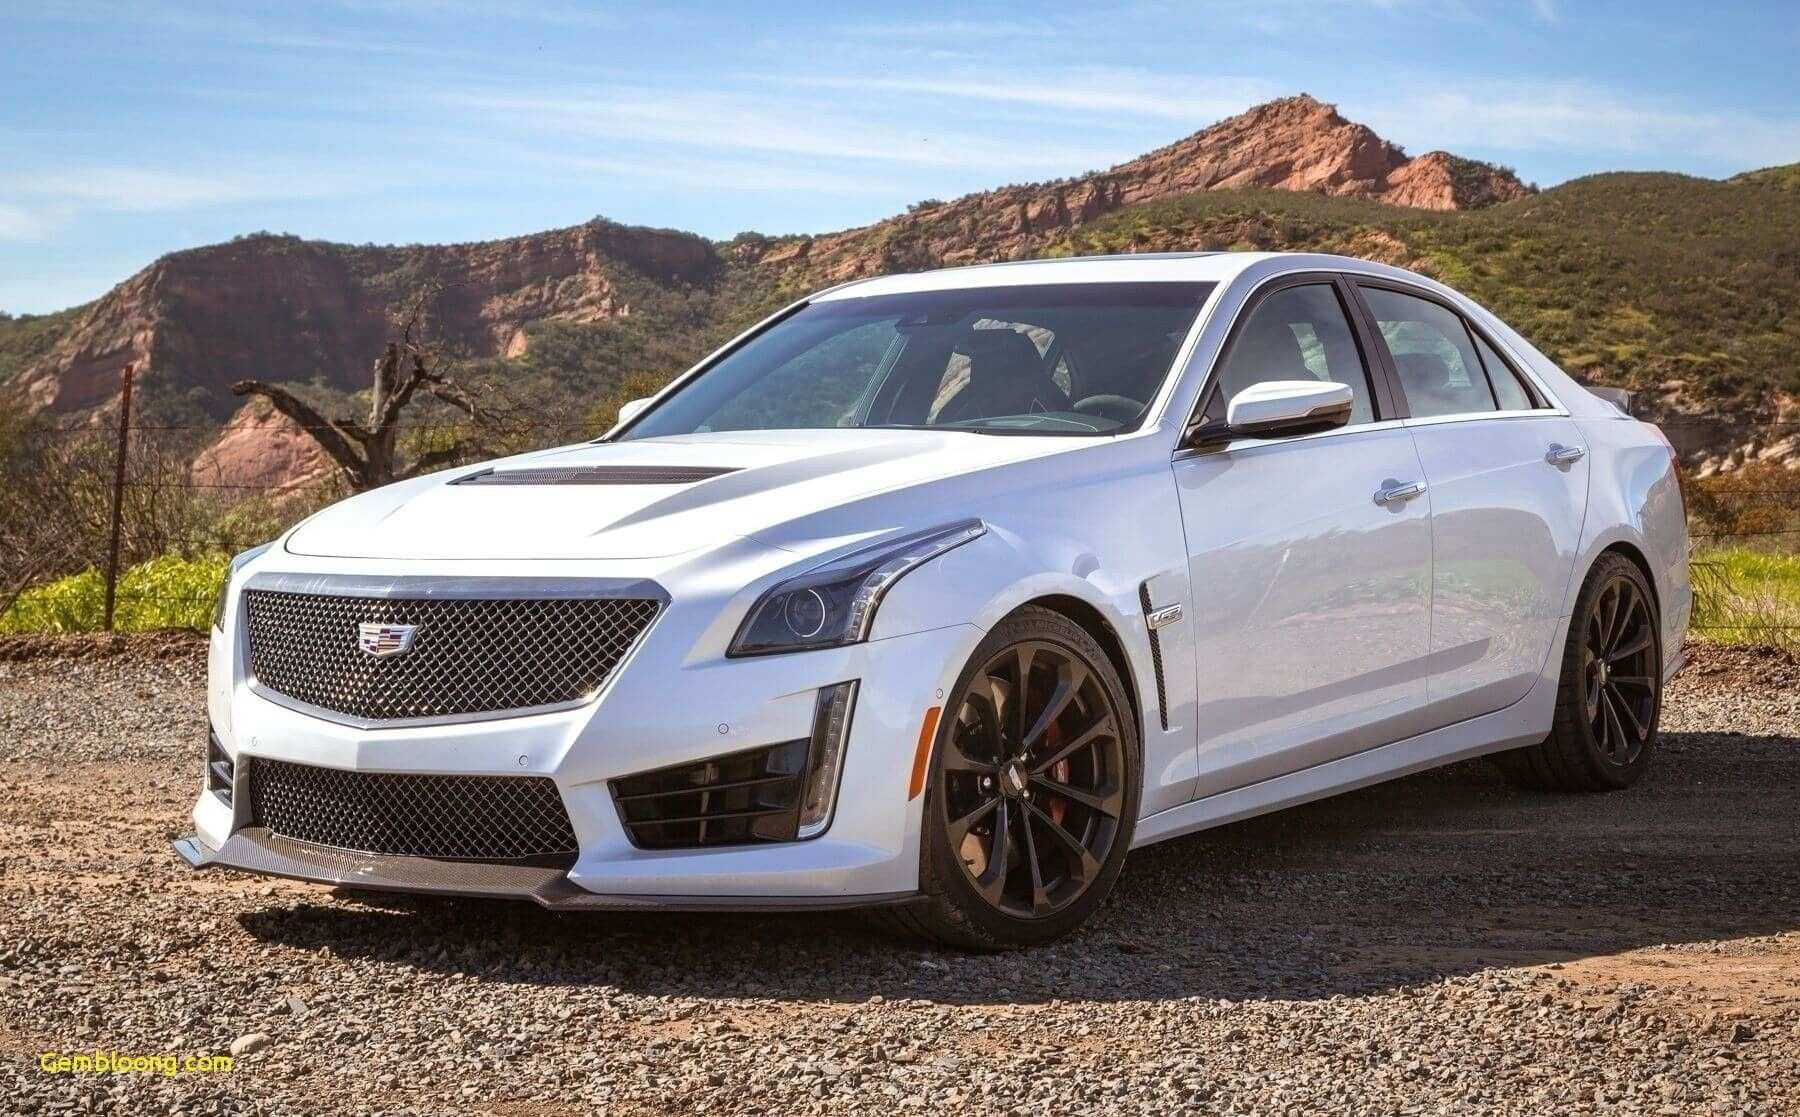 23 Great 2019 Cadillac Deville Price and Review by 2019 Cadillac Deville